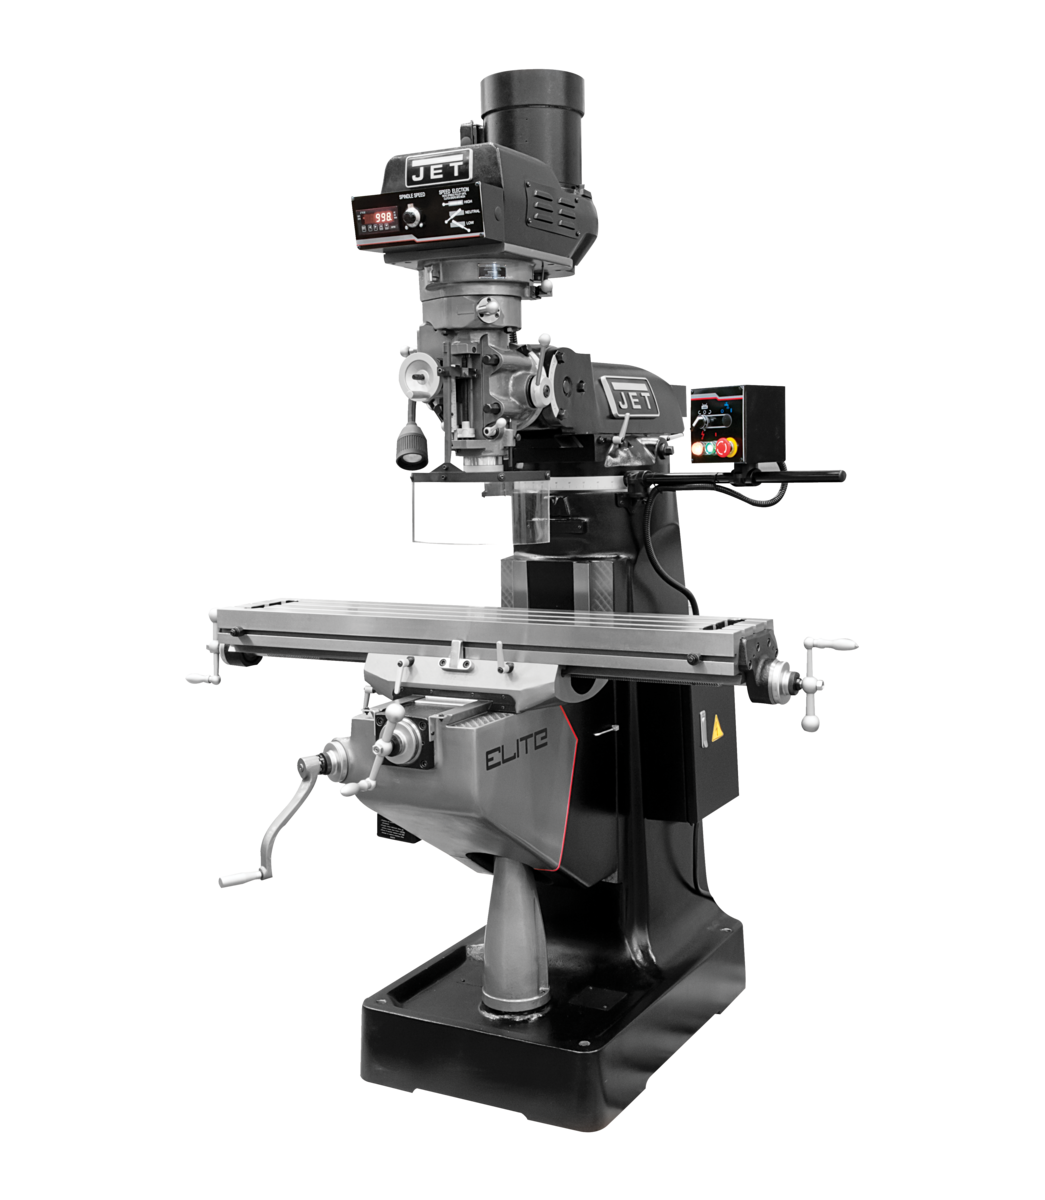 EVS-949 Mill with 3-Axis ACU-RITE 203 (Knee) DRO and X, Y, Z-Axis JET Powerfeeds and USA Made Air Draw Bar